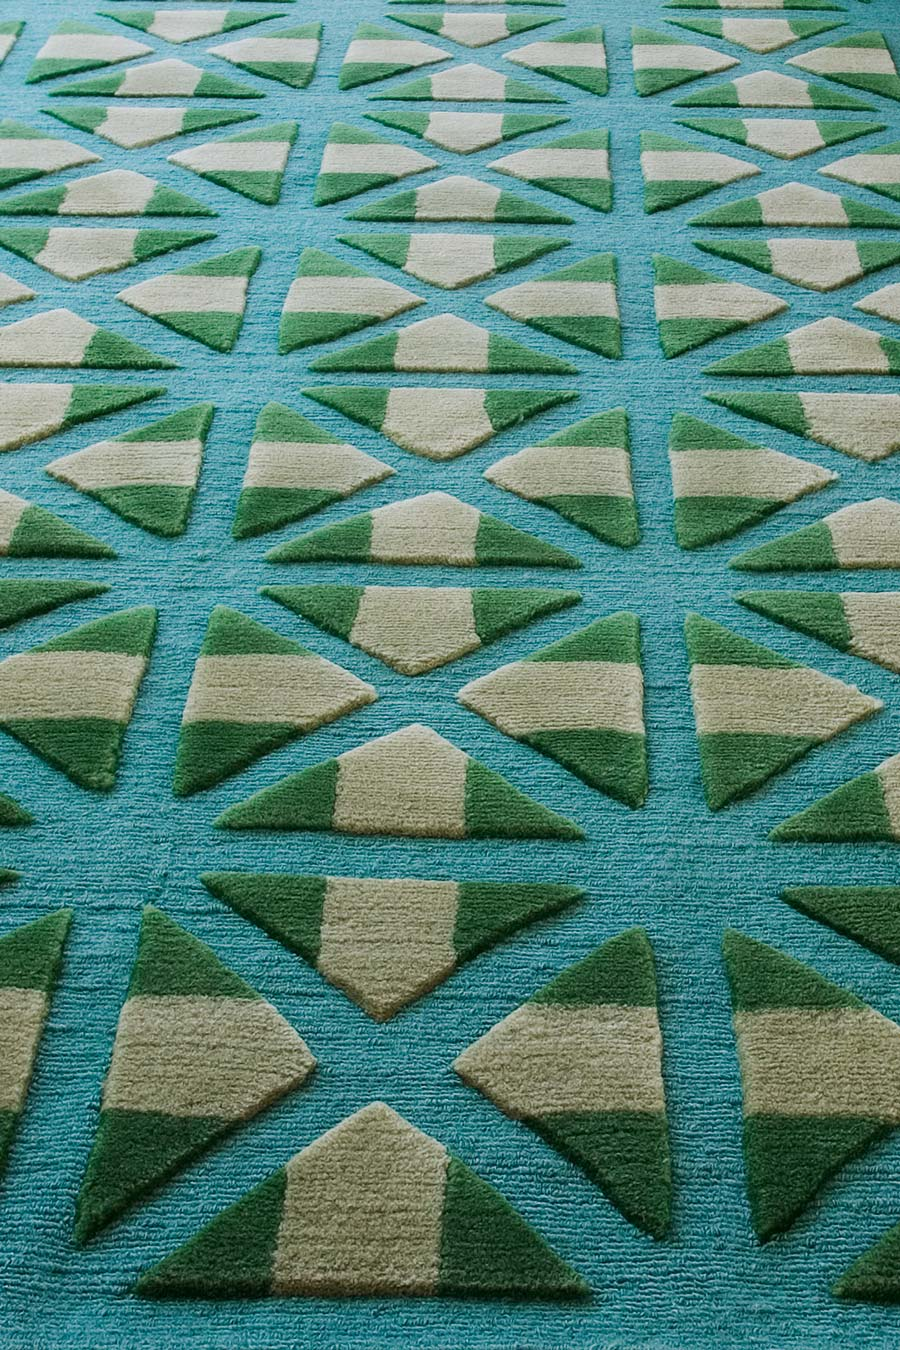 close up of bias rug by bernabeifreeman in blue and green repeat geometric pattern